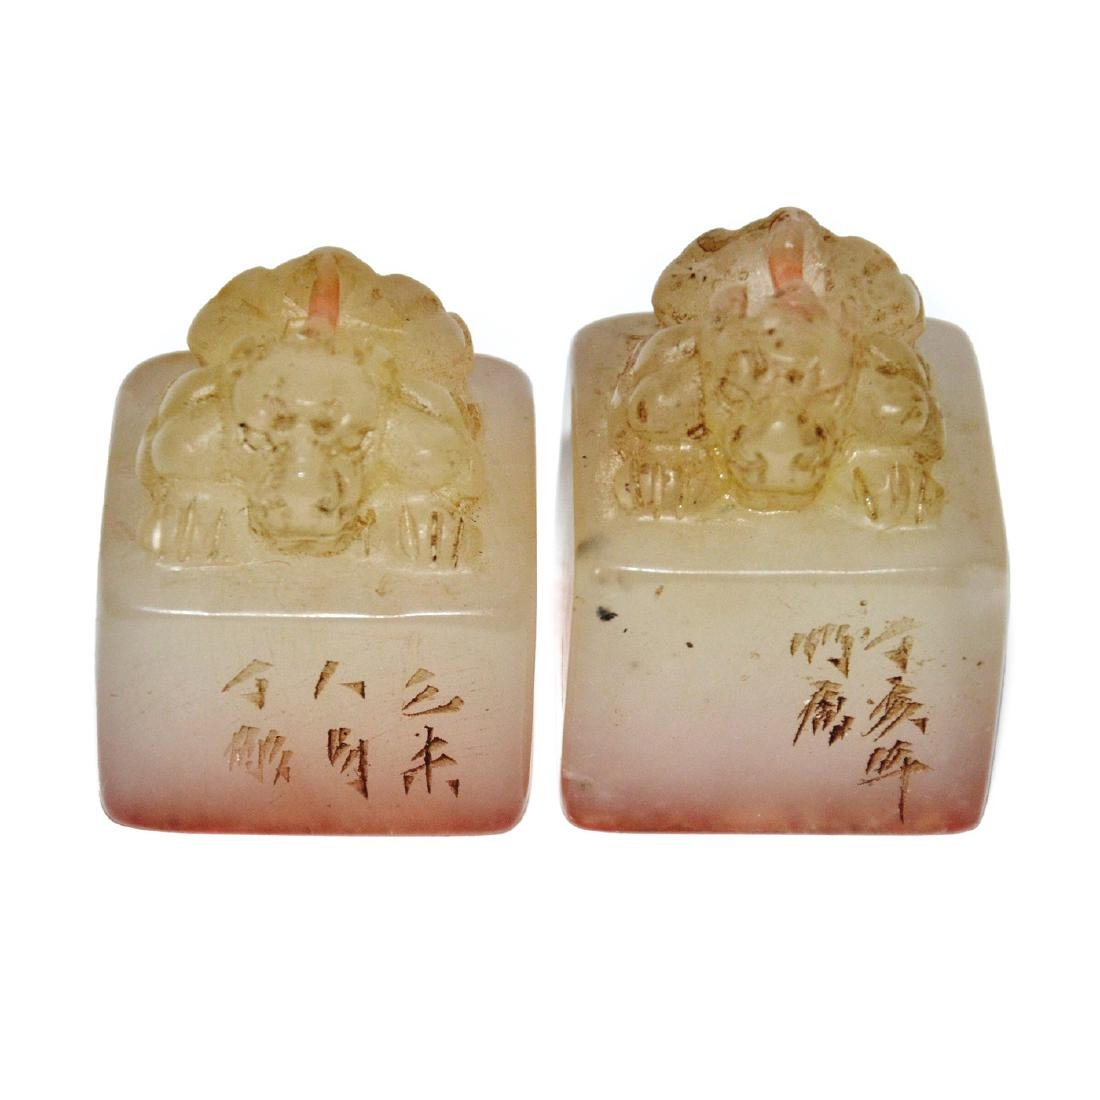 A Pair of Furong Stone Seal with Bixie Knop - 5